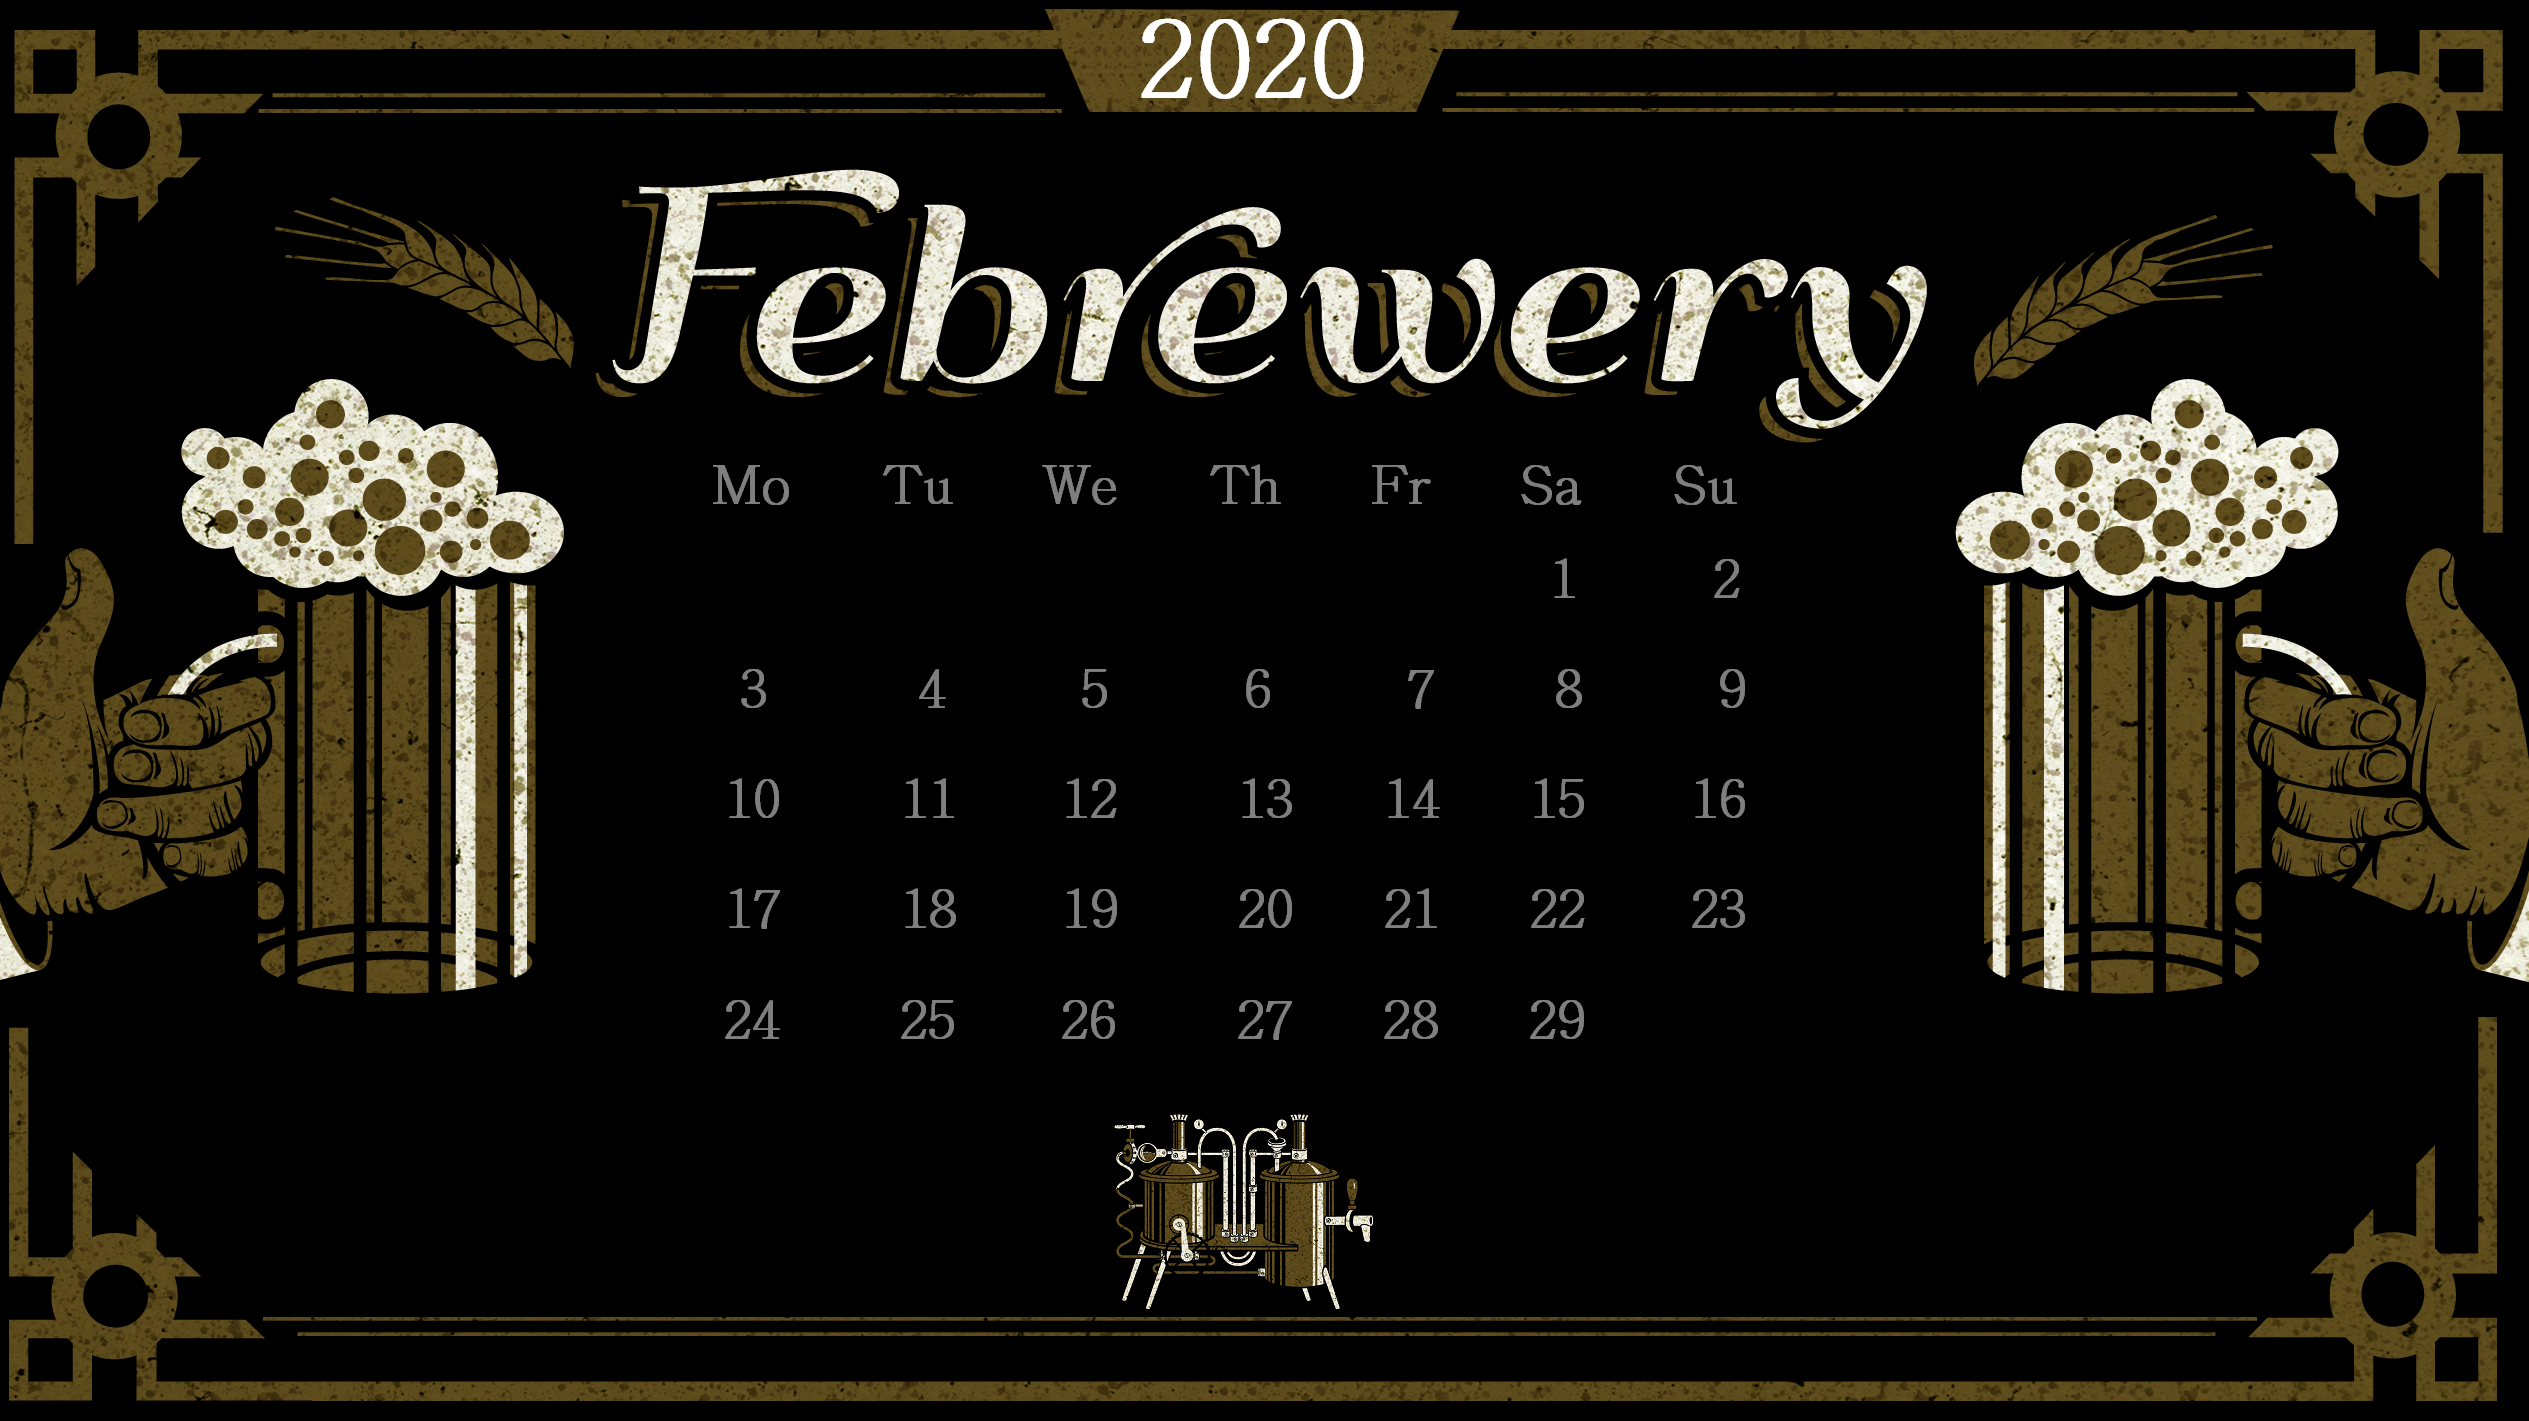 February 2020 Desktop Wallpaper Max Calendars 2529x1421